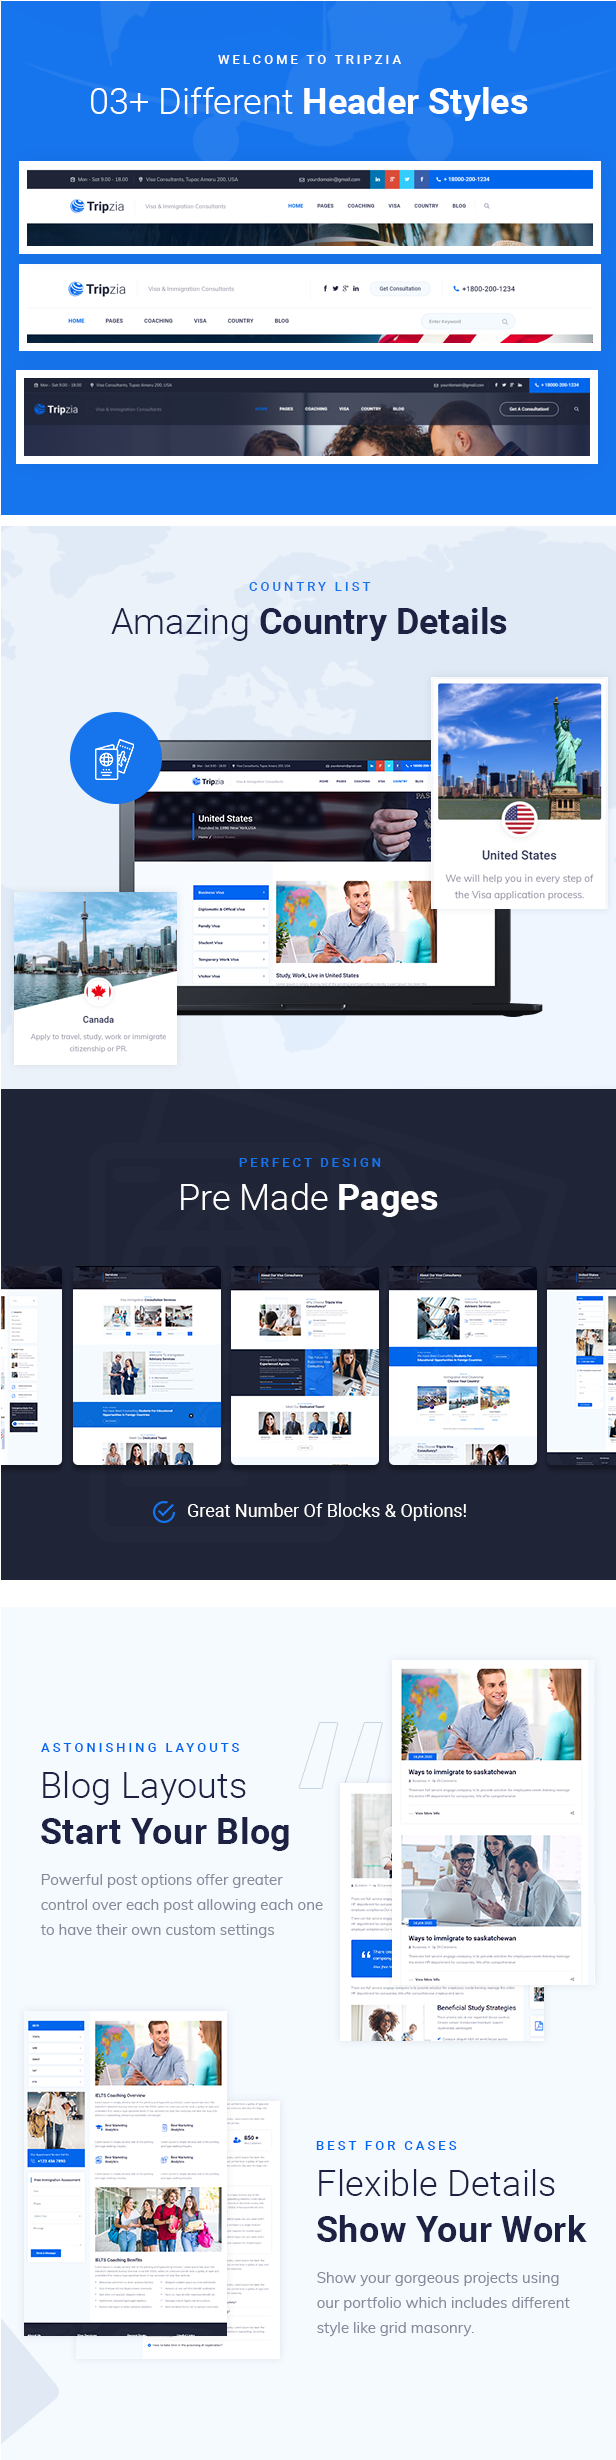 Tripzia - Visa And Immigration Html5 Template